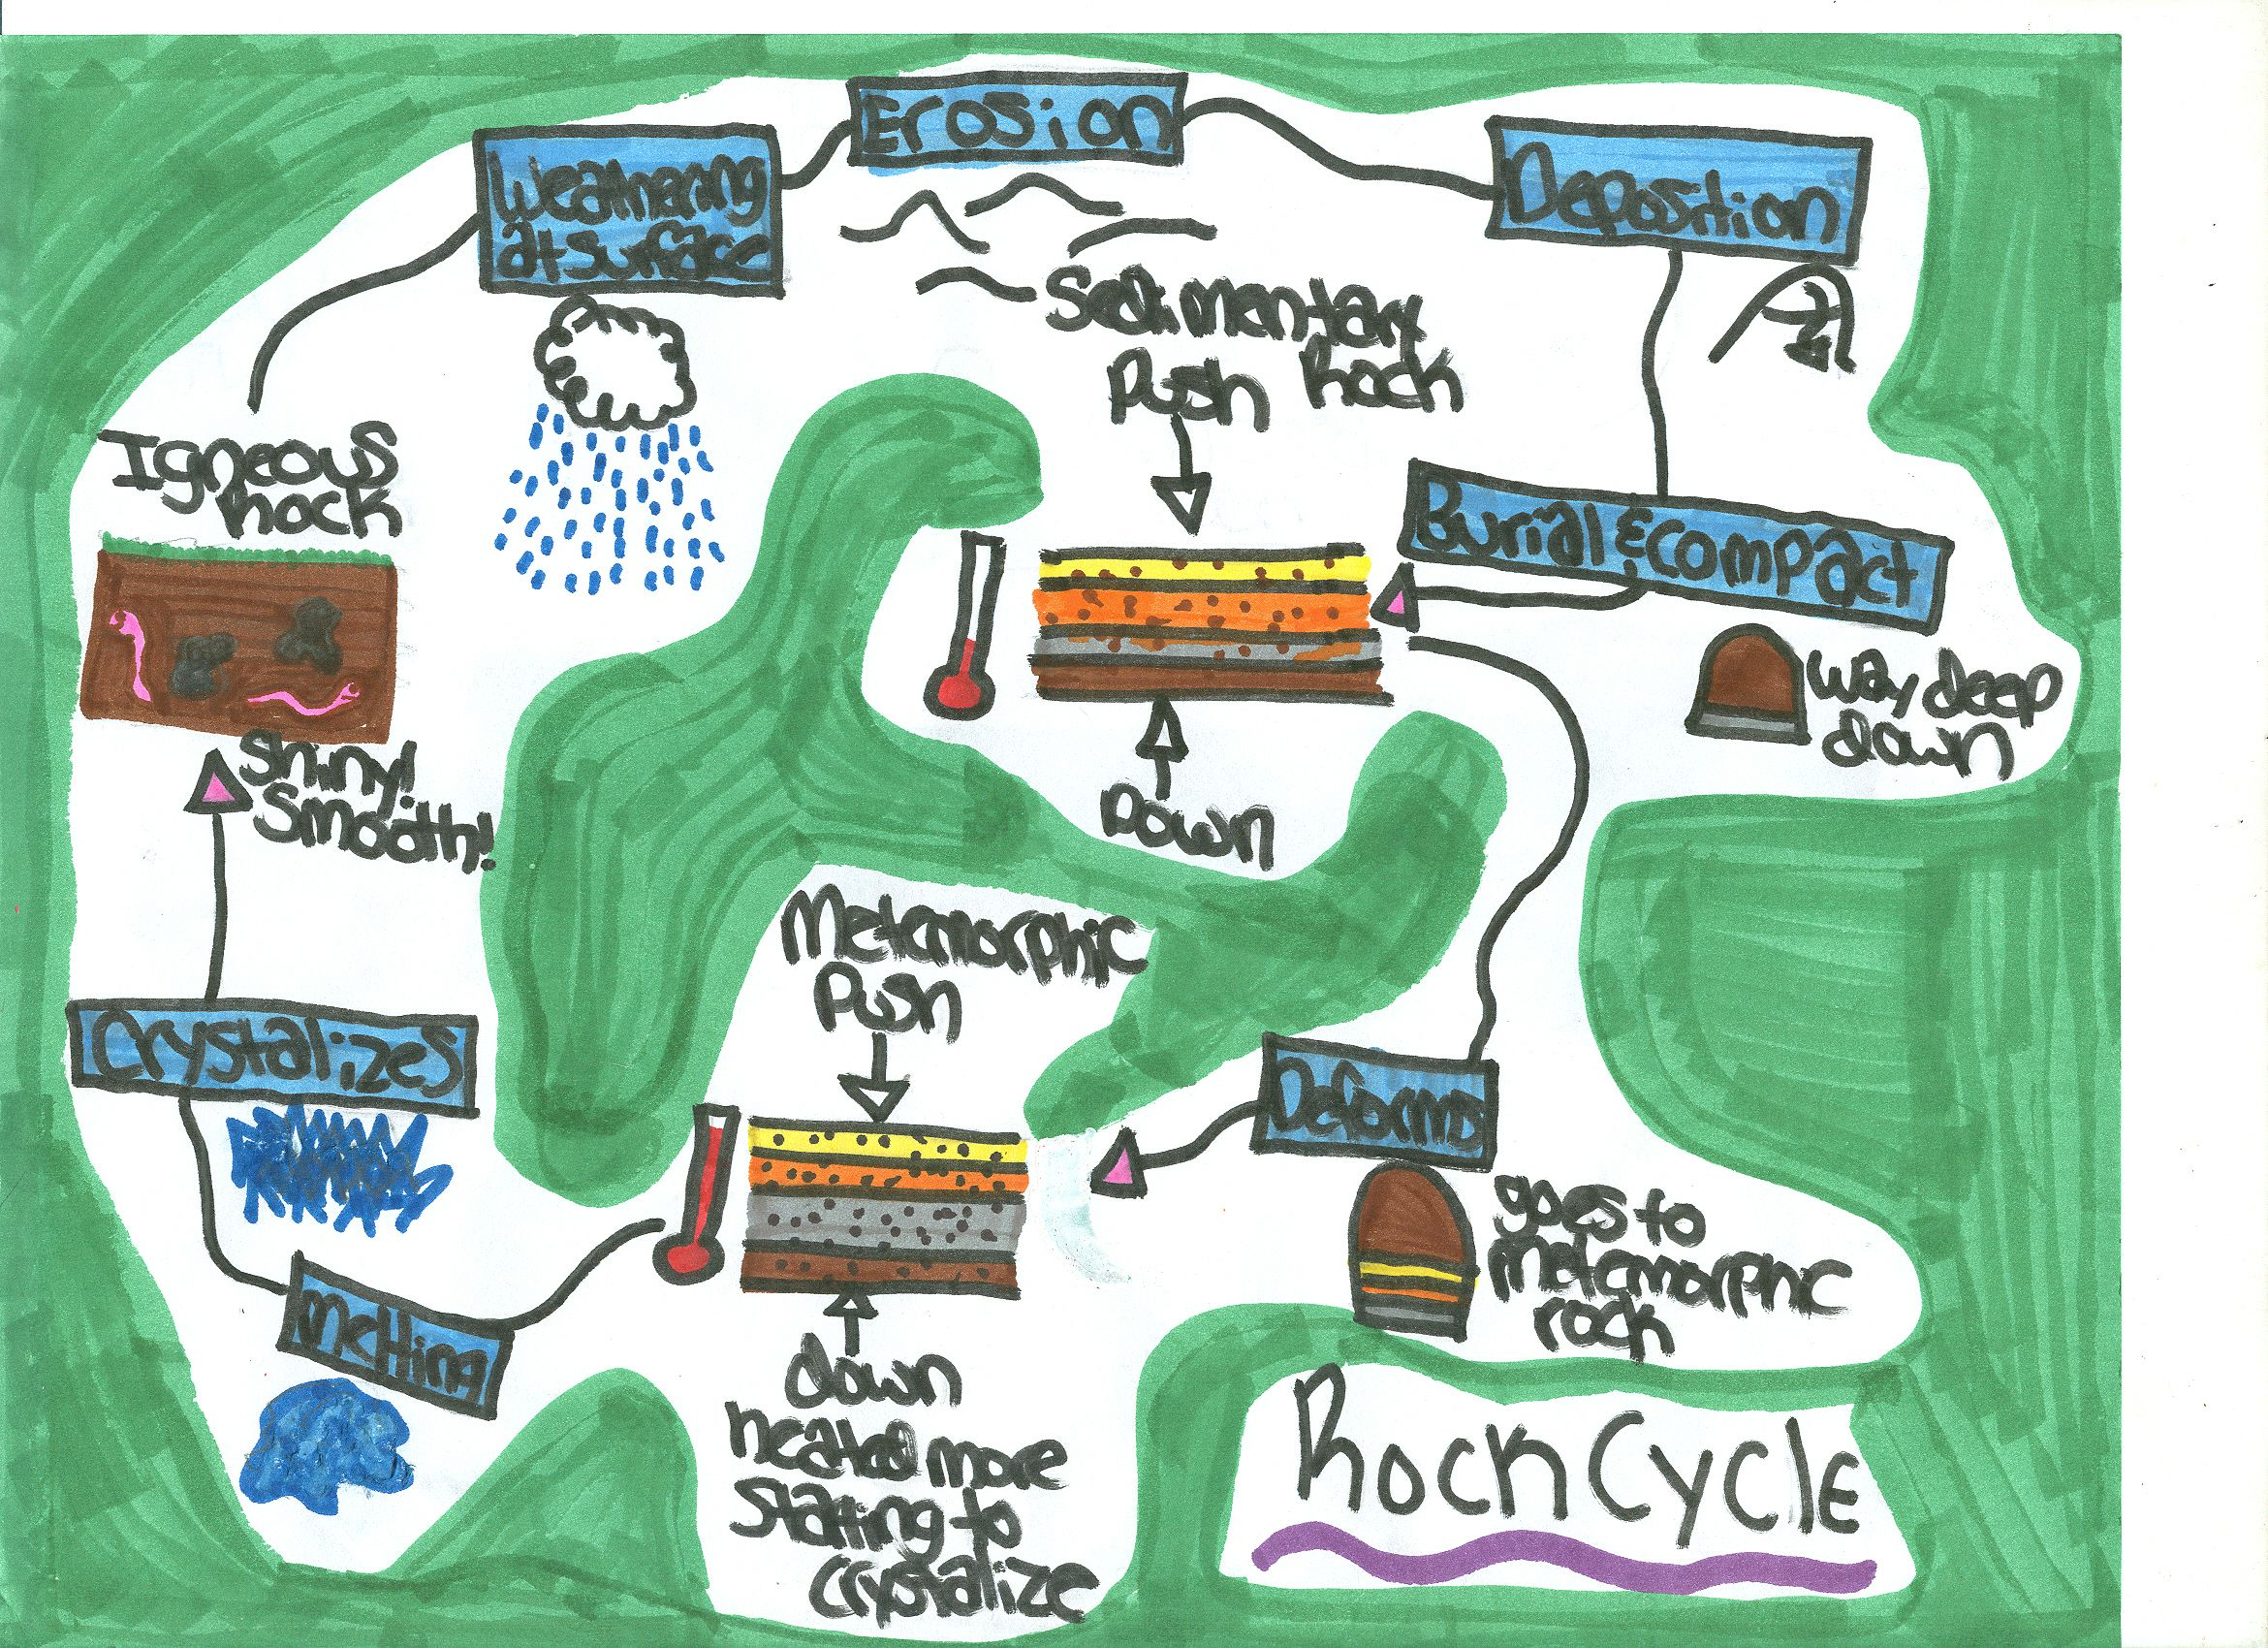 Rock cycle images for kids rocks soil teaching for Soil 6th grade science